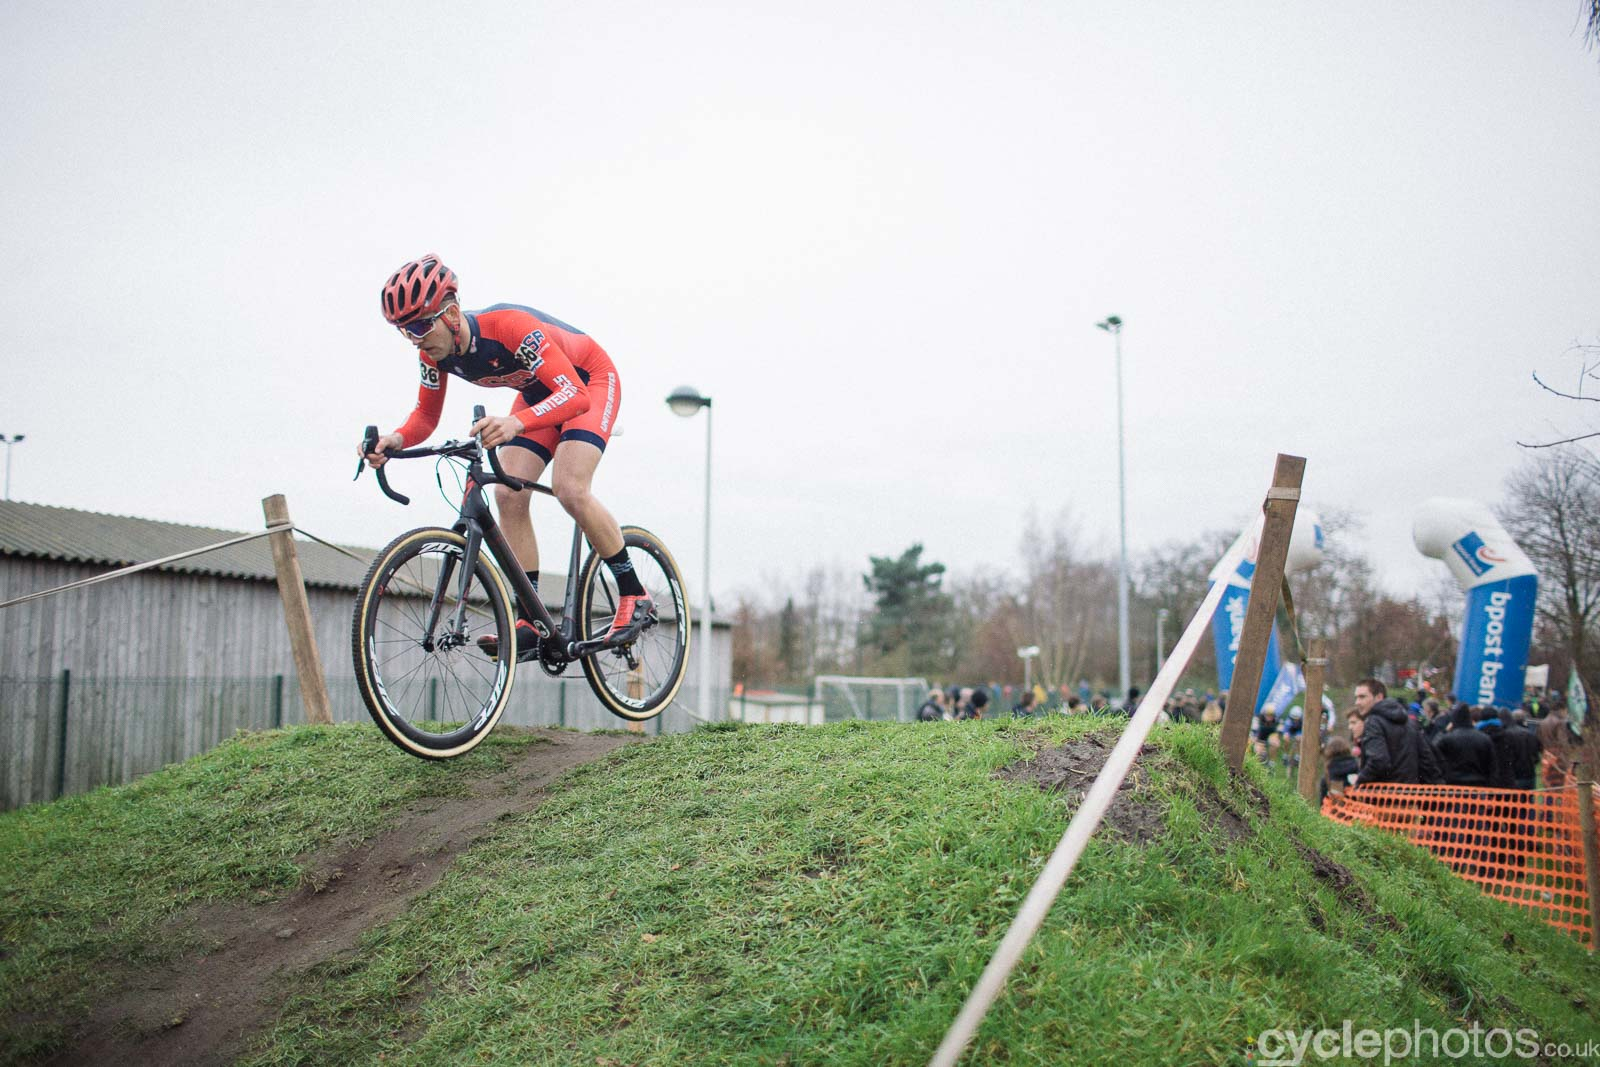 2015-cyclephotos-cyclocross-azencross-120601-tobin-ortenblad